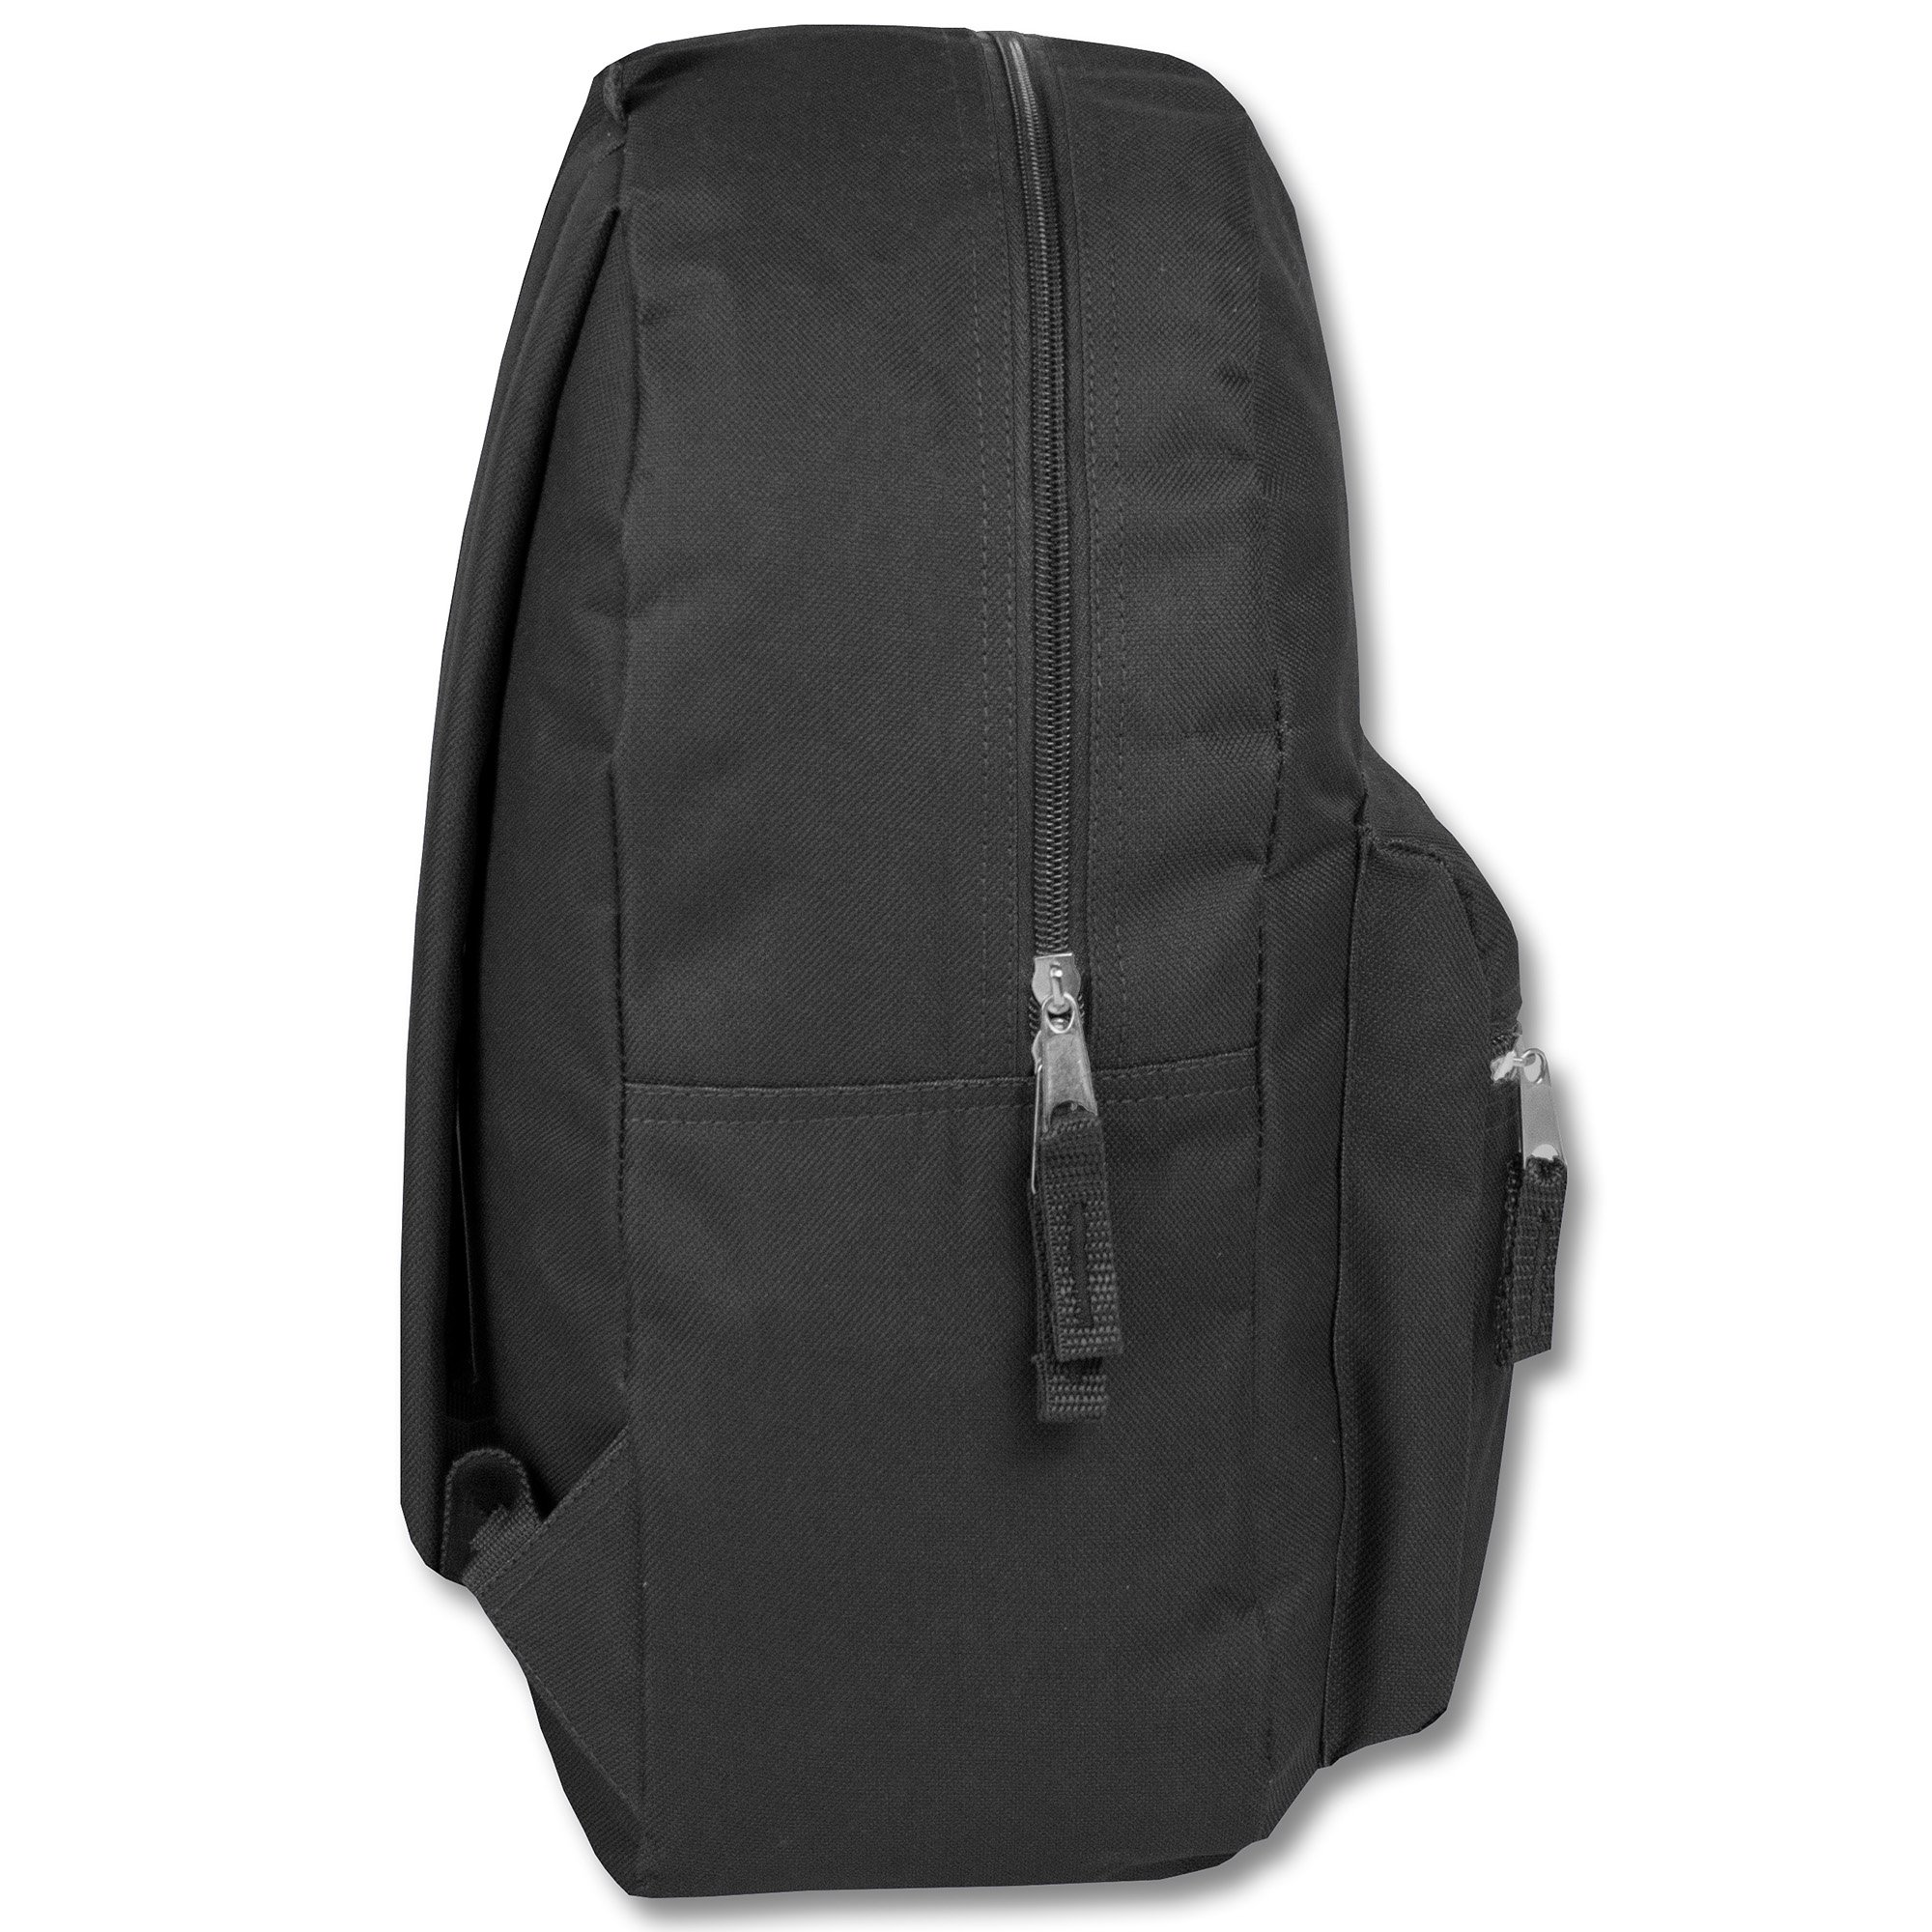 Classic Traditional Solid Backpacks with Adjustable Padded Shoulder Straps (Black) by Trail maker (Image #2)